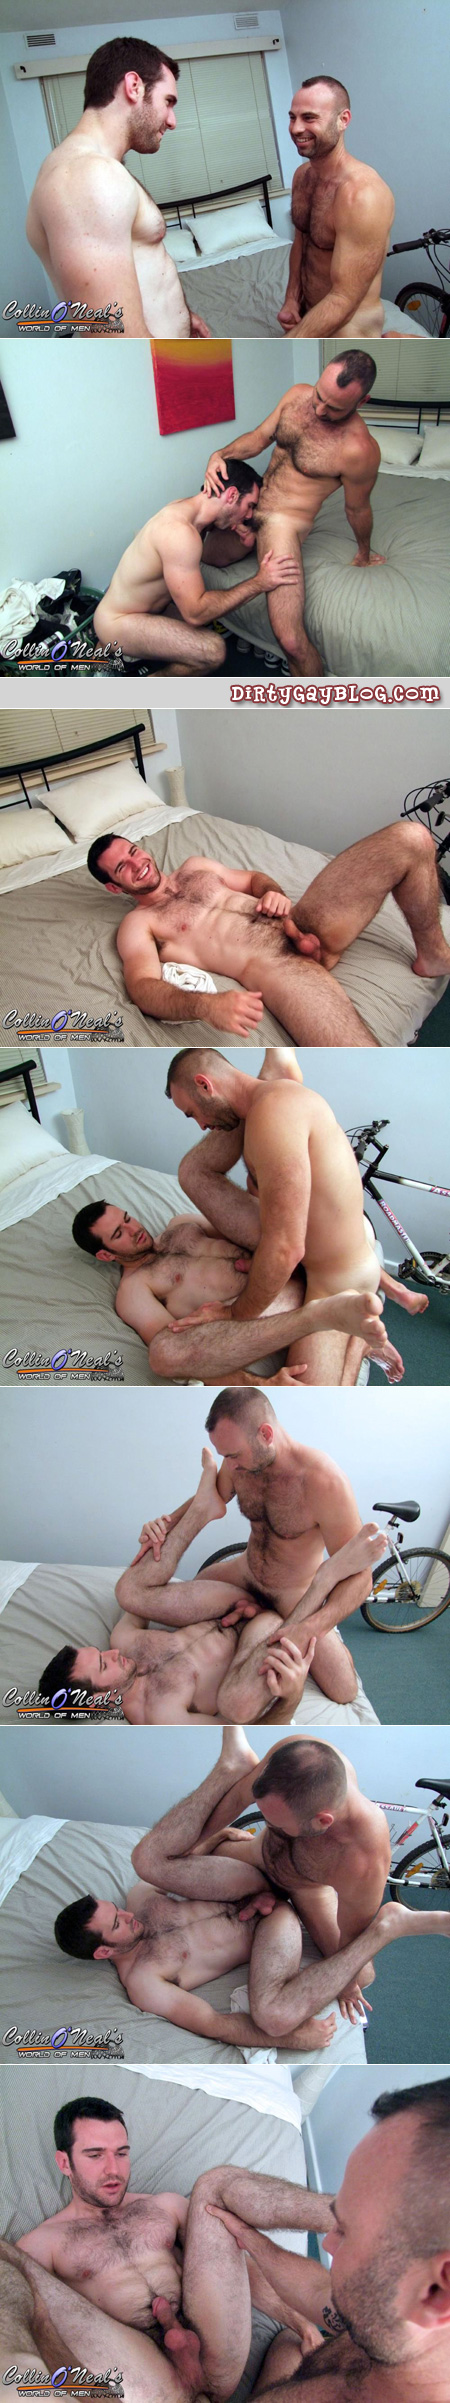 Two hairy guys, one bear and one muscle, gets their balls off together.